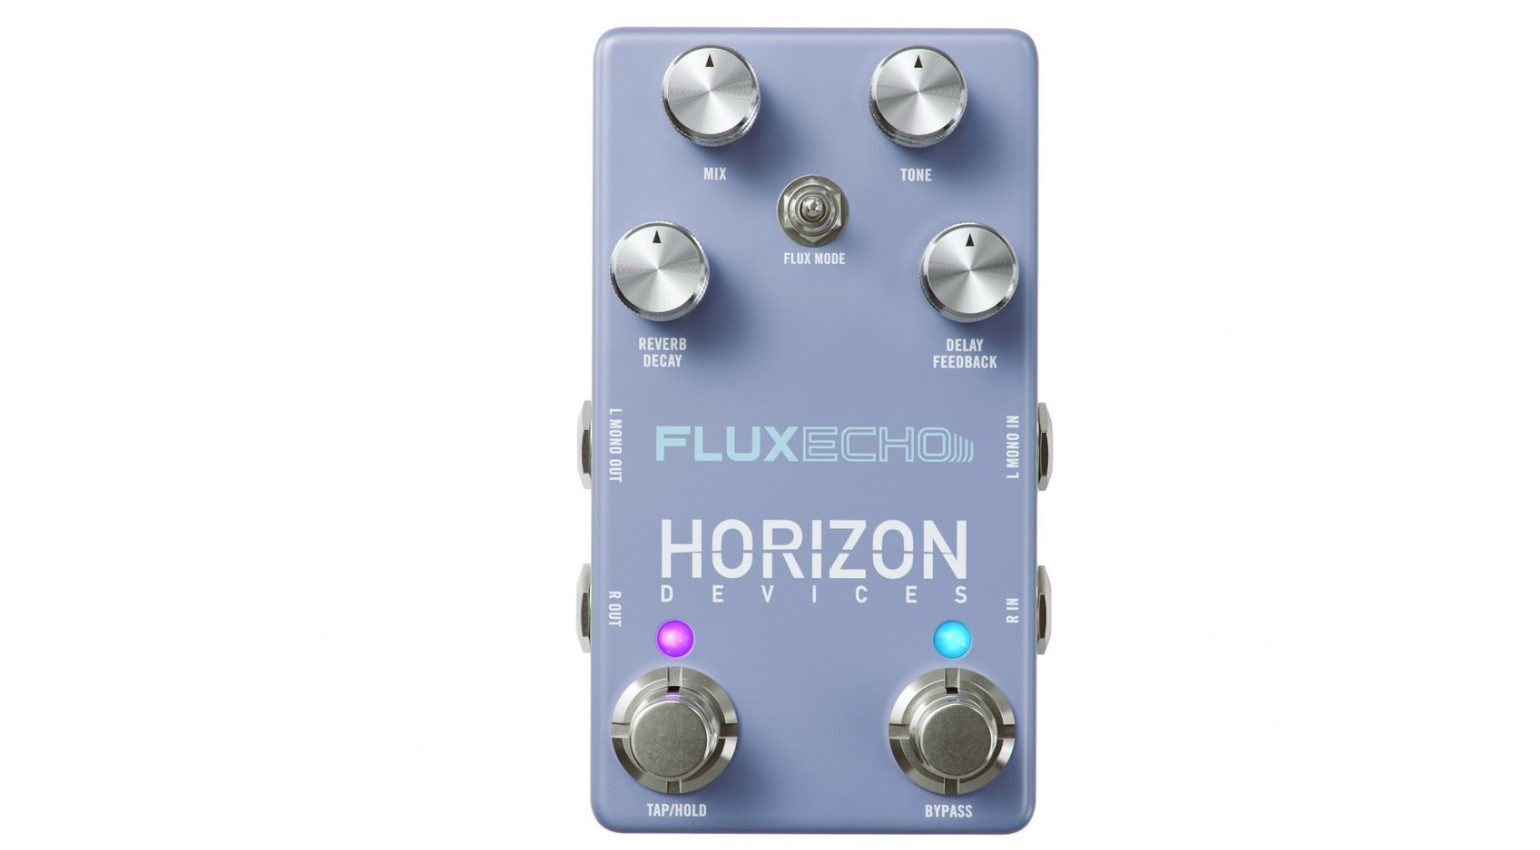 Horizon Devices Flux Echo Front Solo